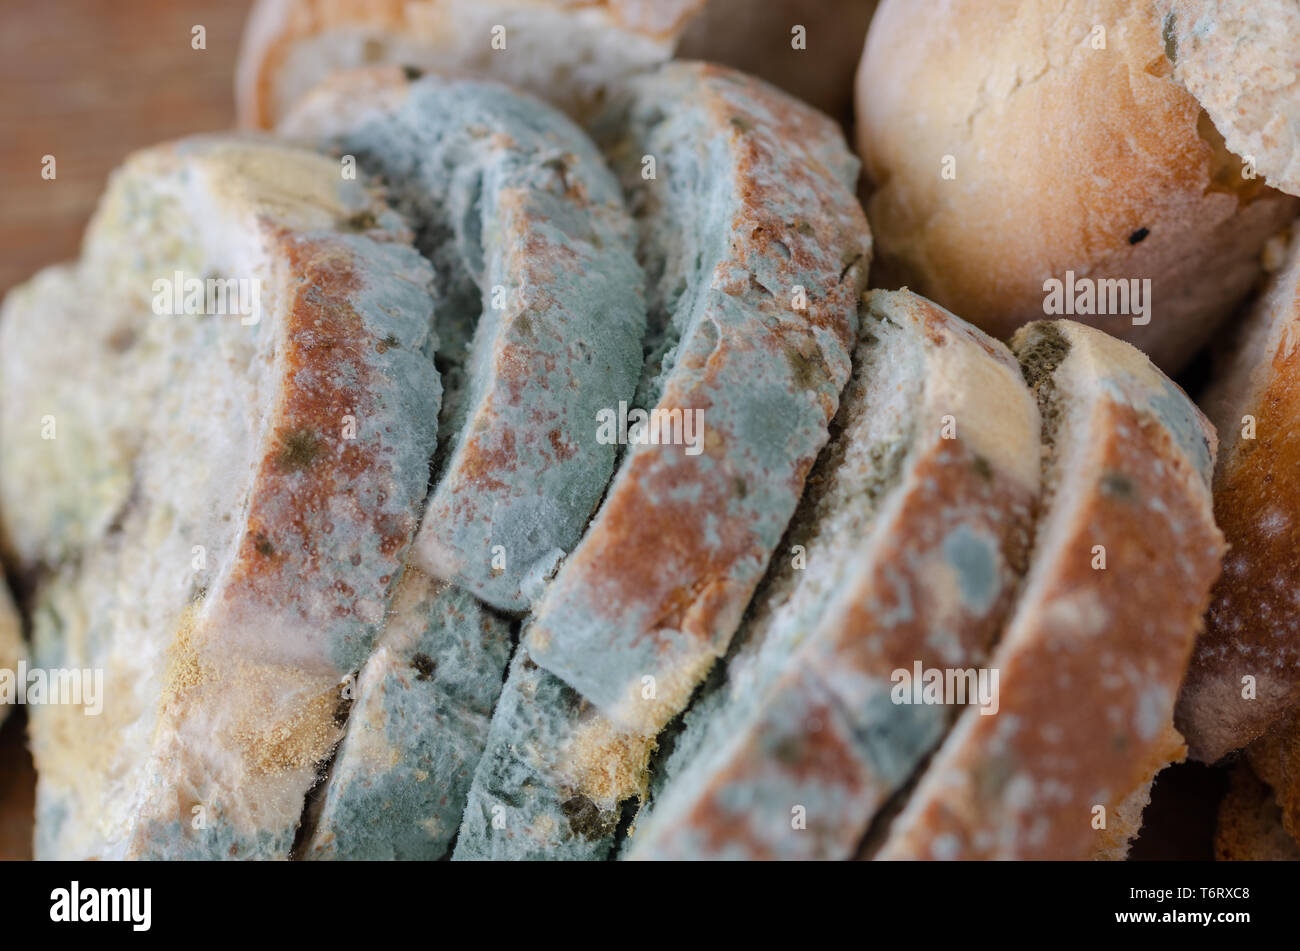 Moldy bread slices on wooden cutting board.Moldy inedible food. - Stock Image